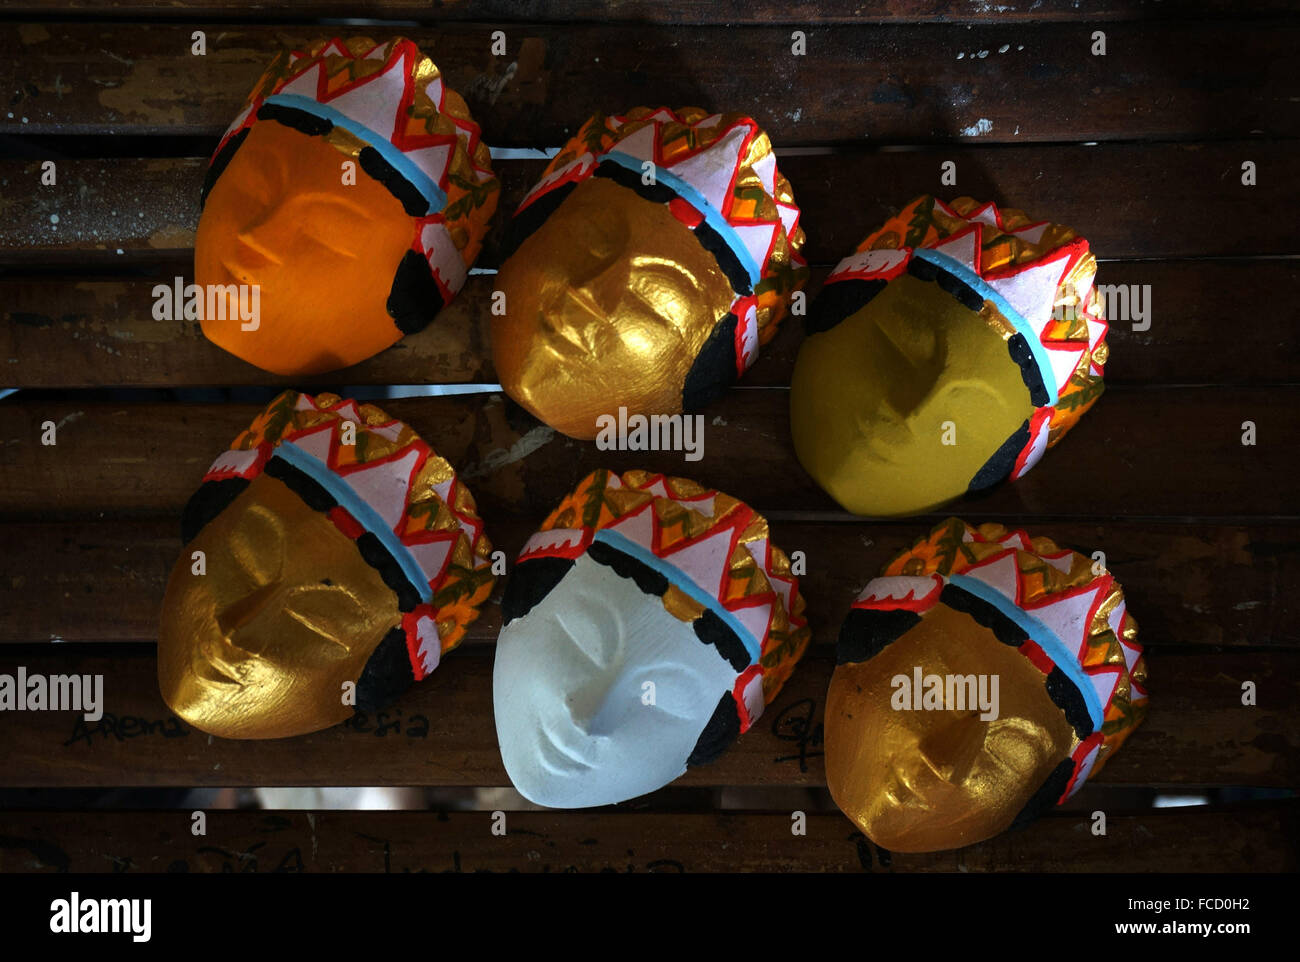 Malang, Indonesia  21st Jan, 2016  Souvenir masks puppet in